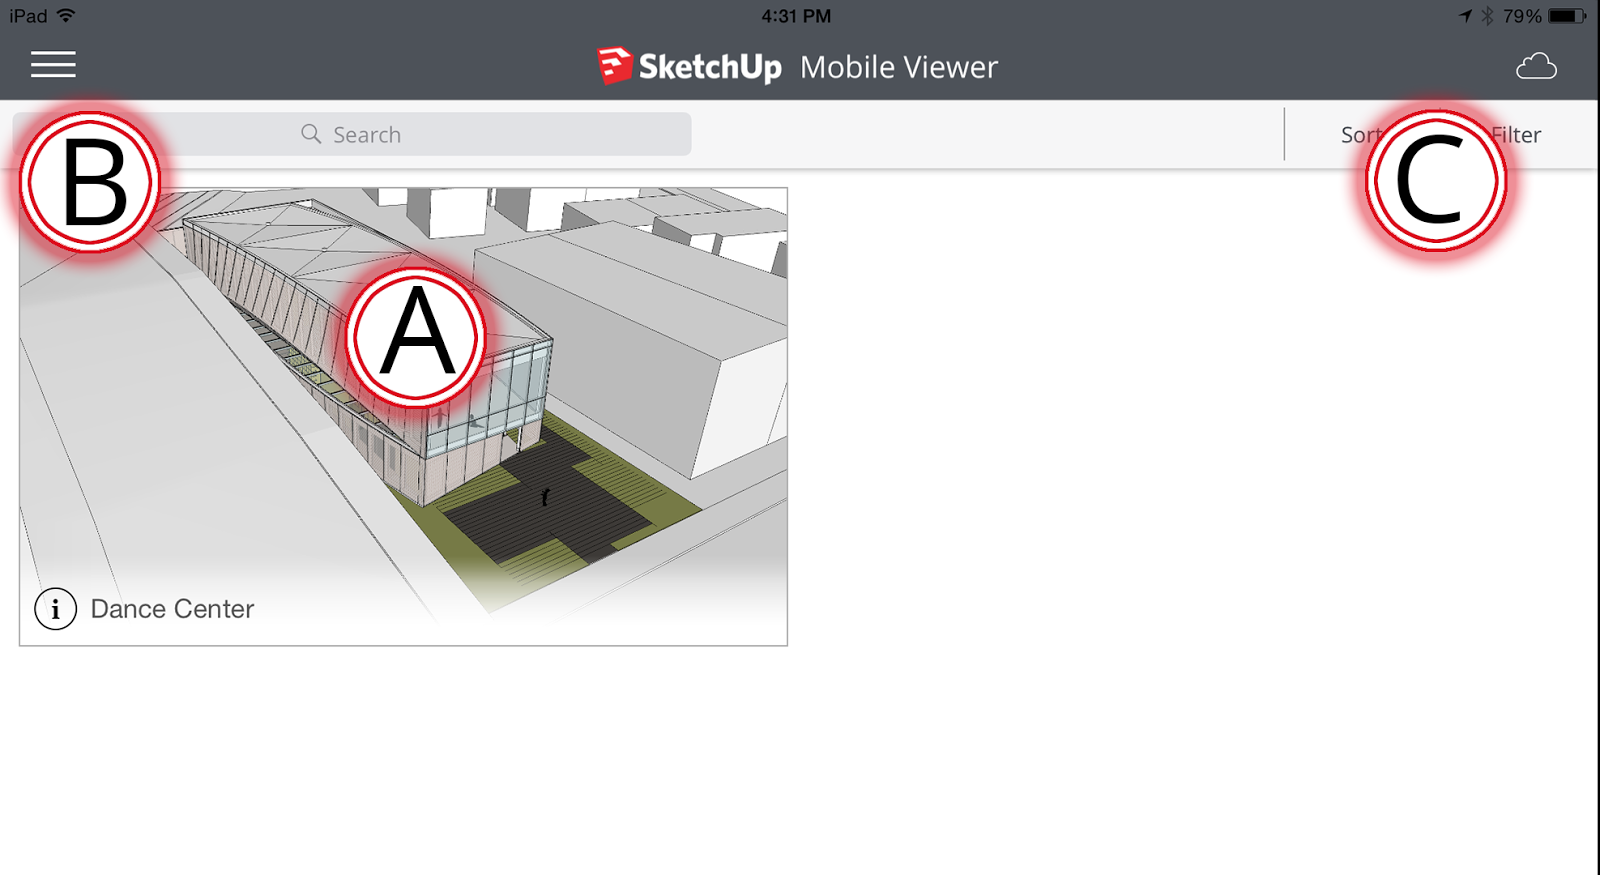 SketchUp Mobile Viewer Home